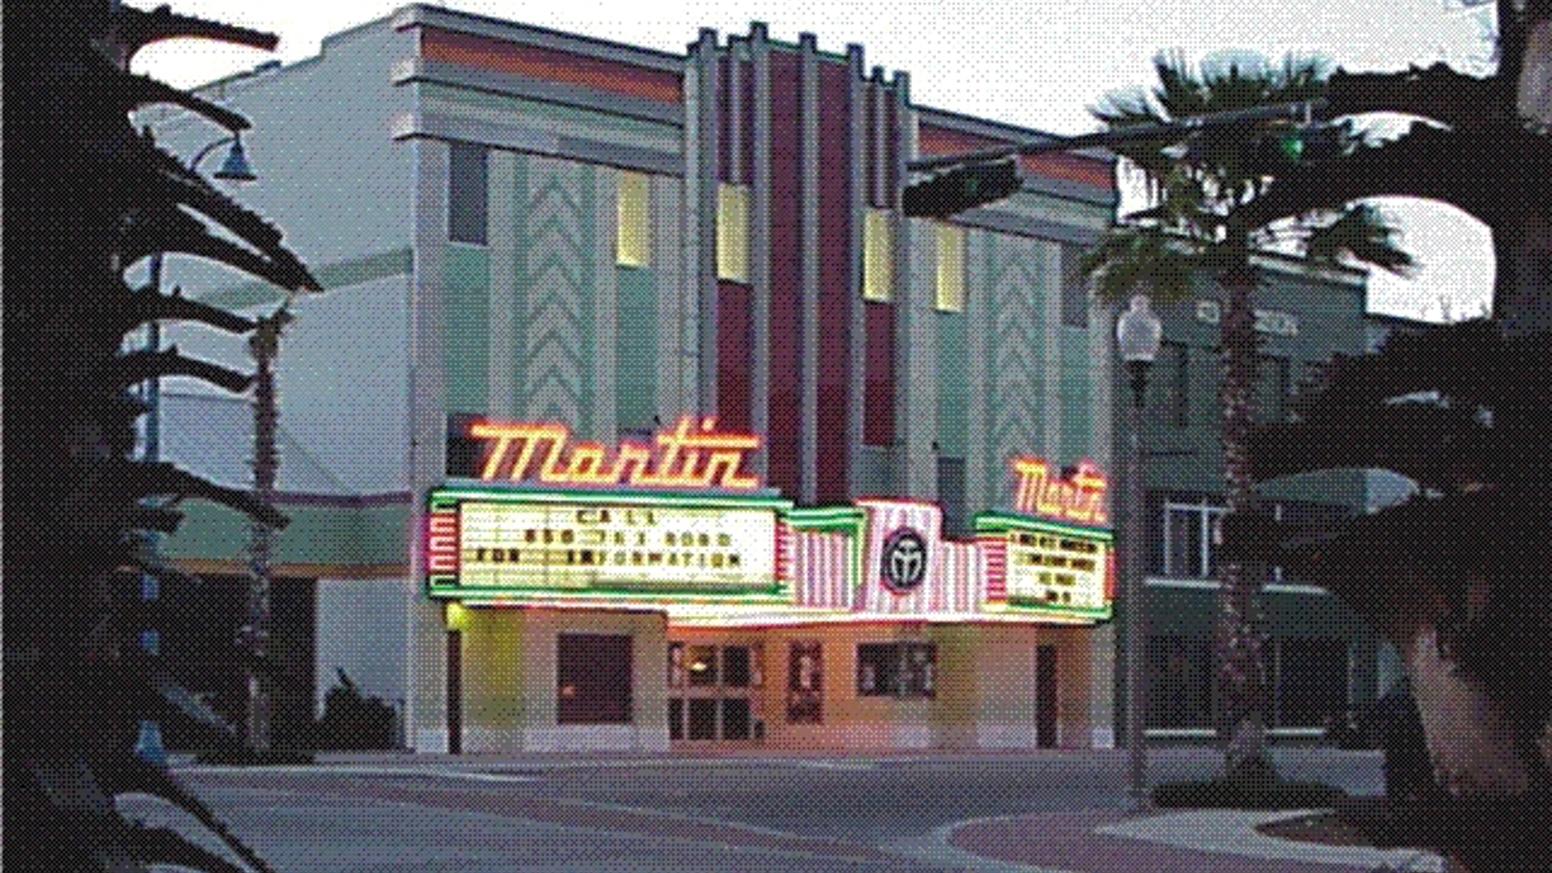 HELP US PUT MOVIES BACK ON THE MARQUEE!! by Martin Theatre — Kickstarter